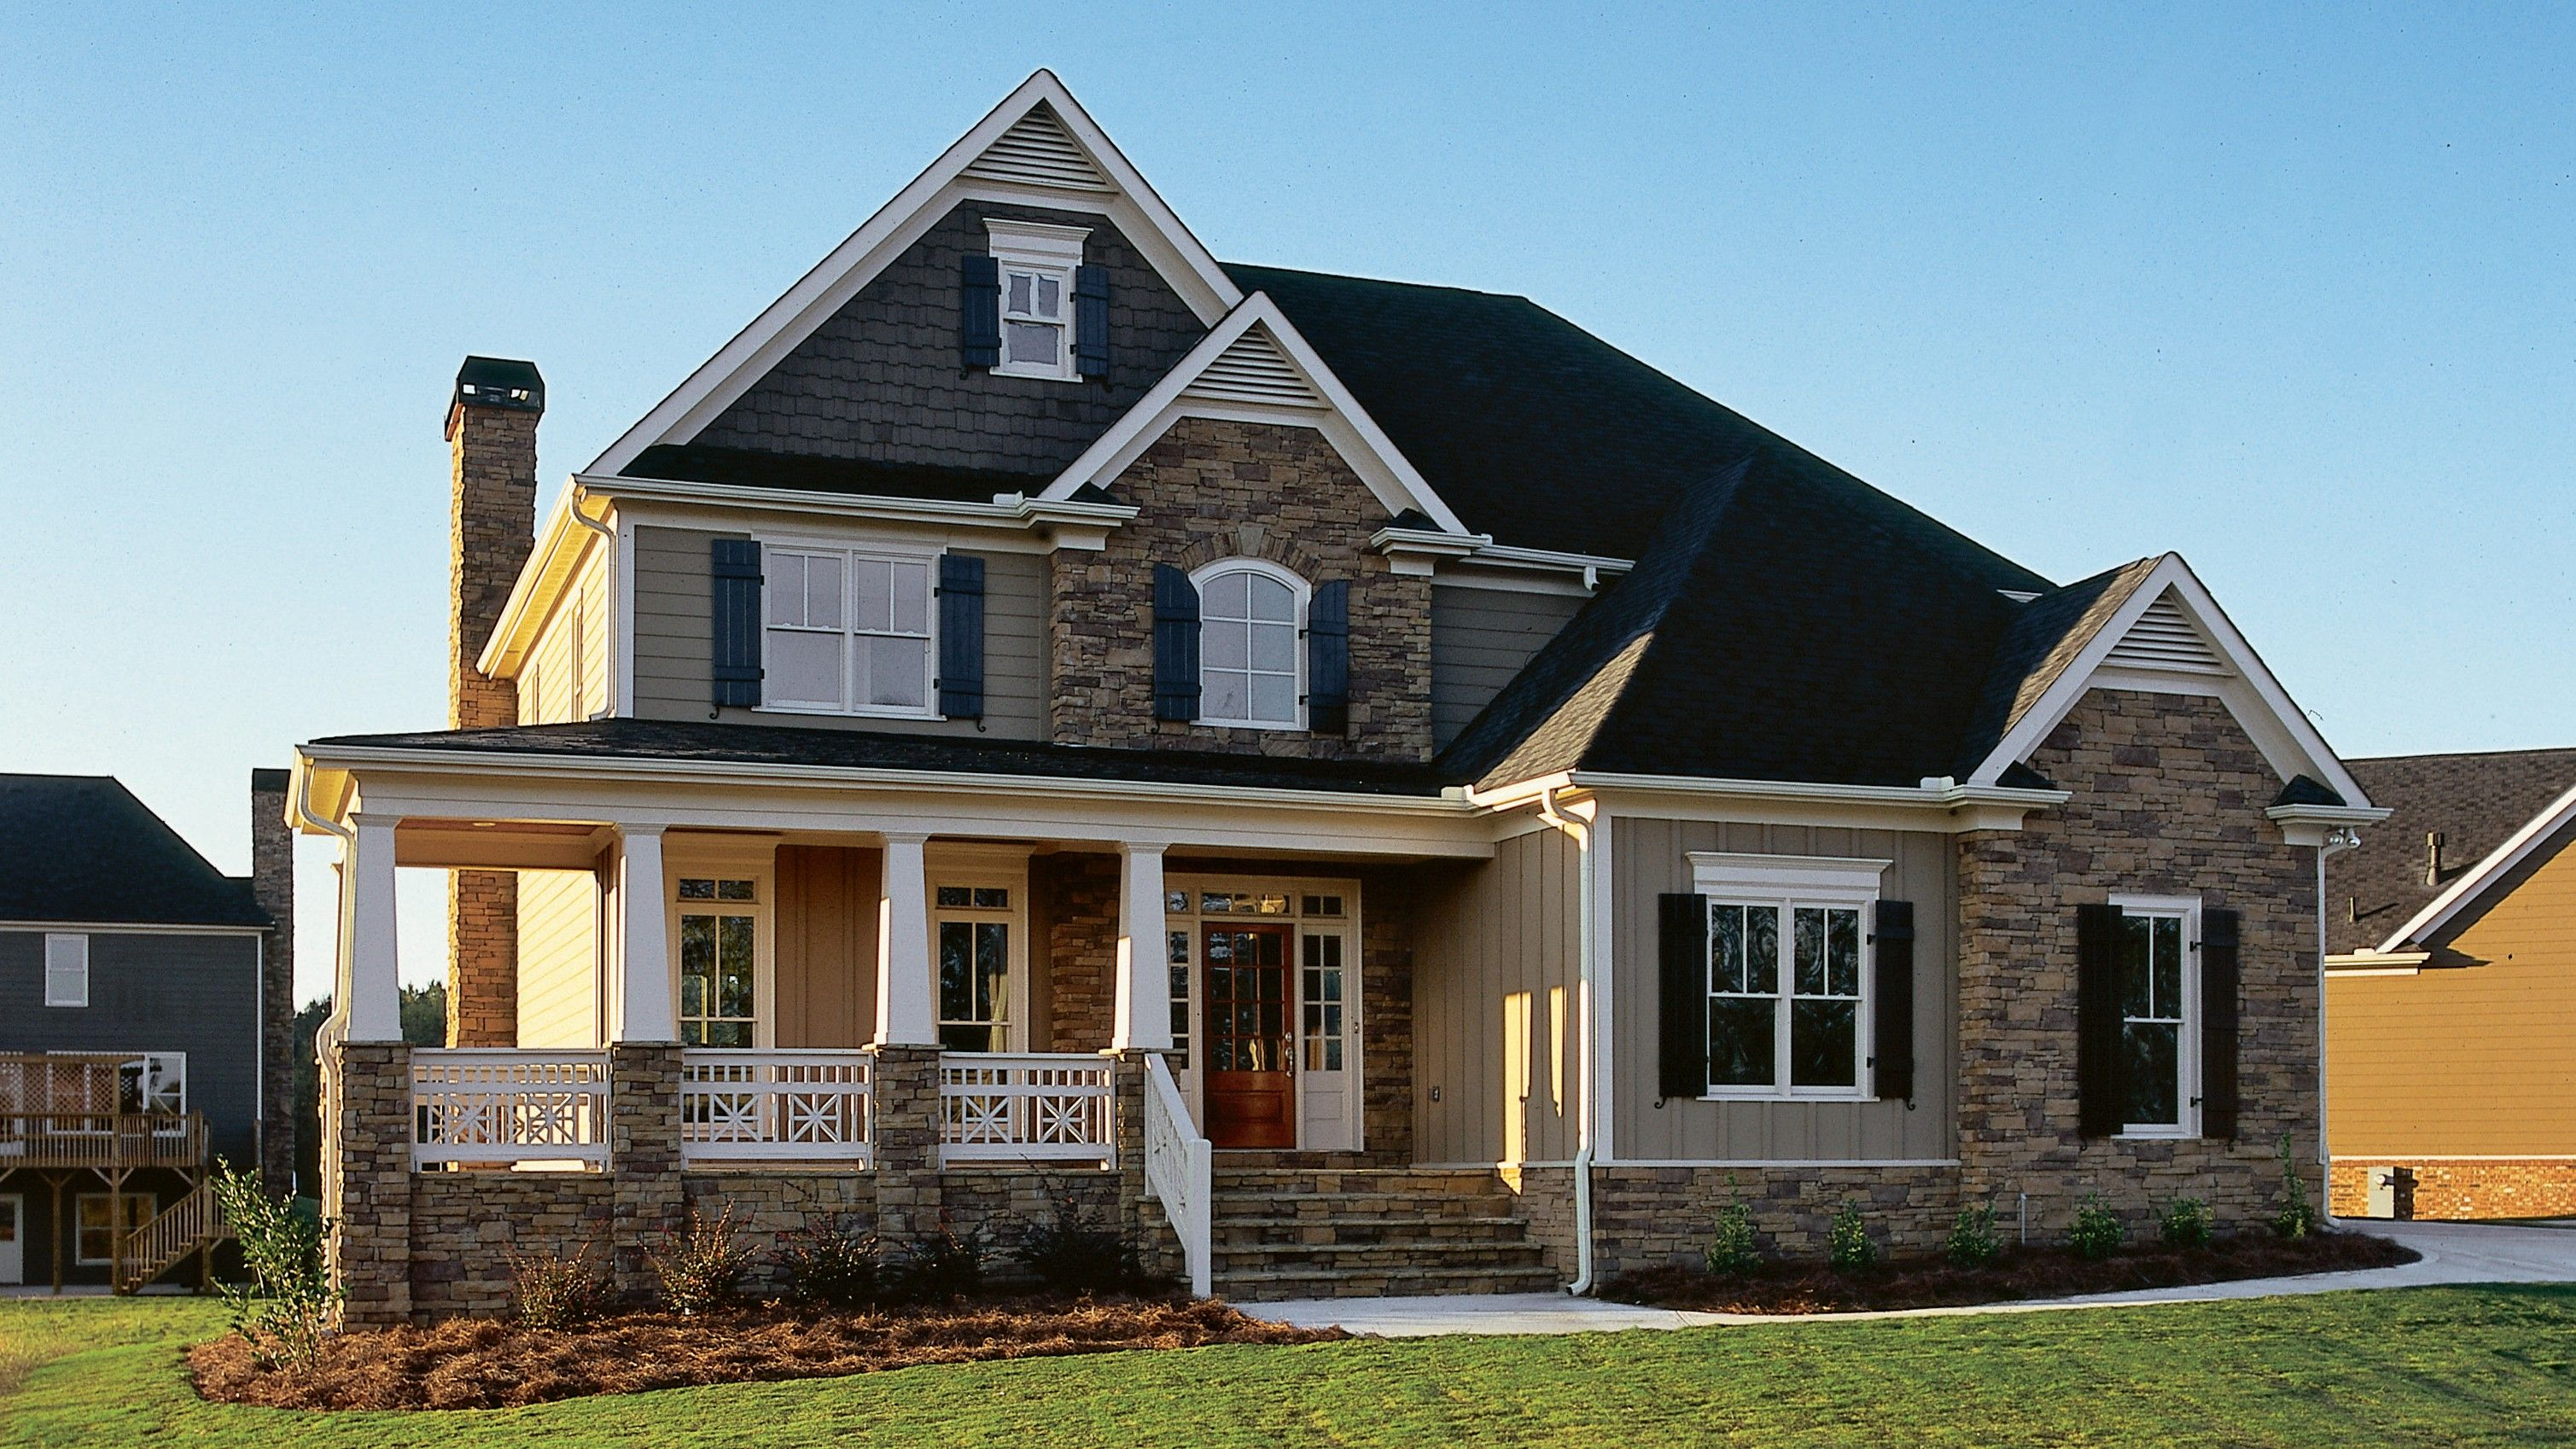 Craftsman Style House Plan 4 Beds 2 5 Baths 2443 Sq Ft Plan 927 1 Country Floor Plans Country House Plans Craftsman Style House Plans